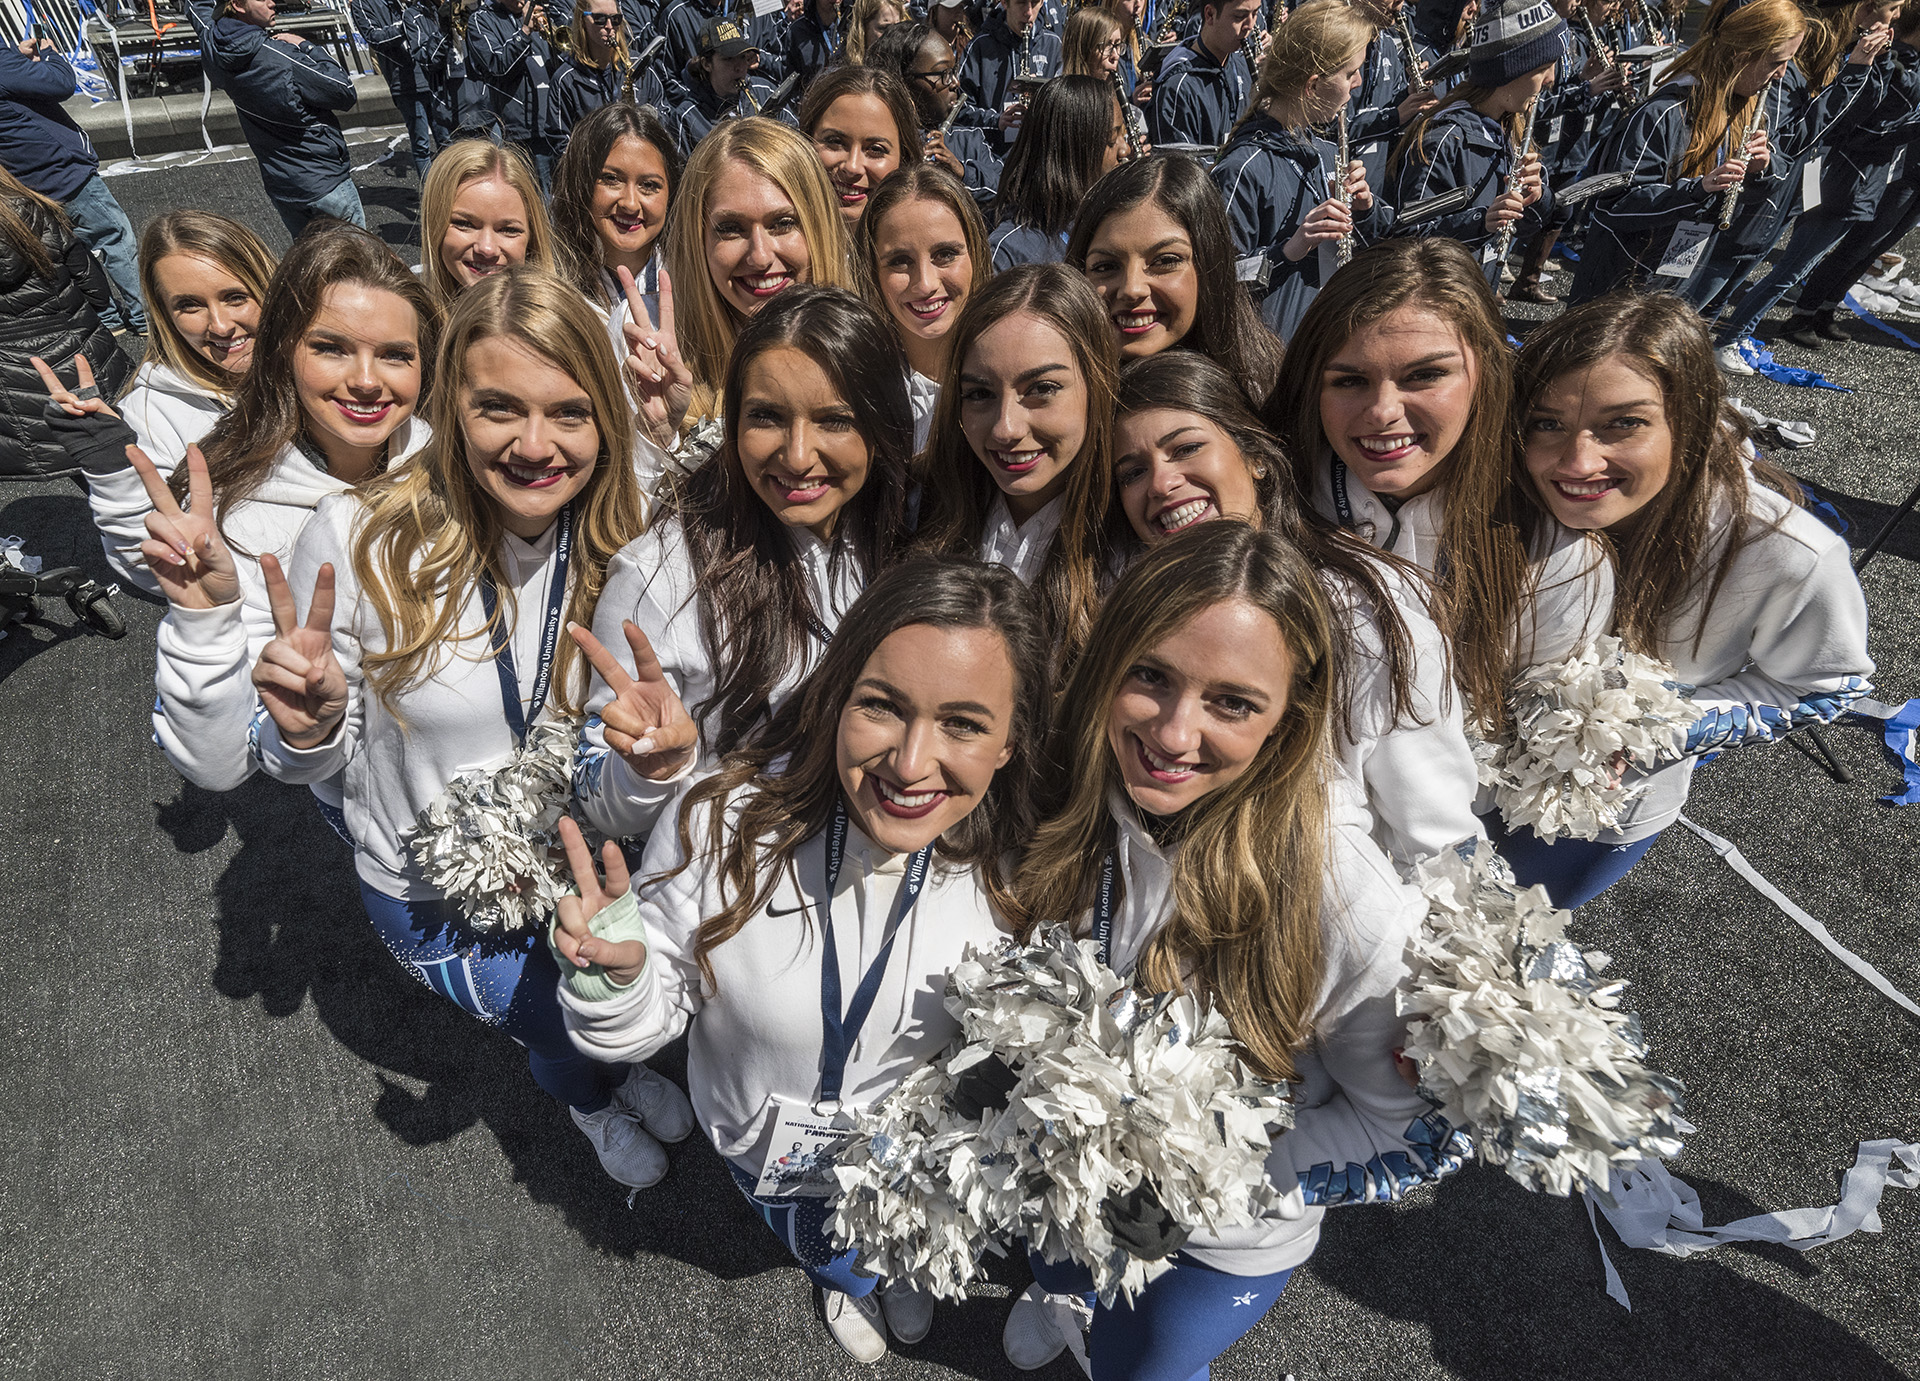 "<div class=""meta image-caption""><div class=""origin-logo origin-image wpvi""><span>WPVI</span></div><span class=""caption-text"">Pictured: Villanova National Championship Parade in Center City on April 5, 2018.</span></div>"